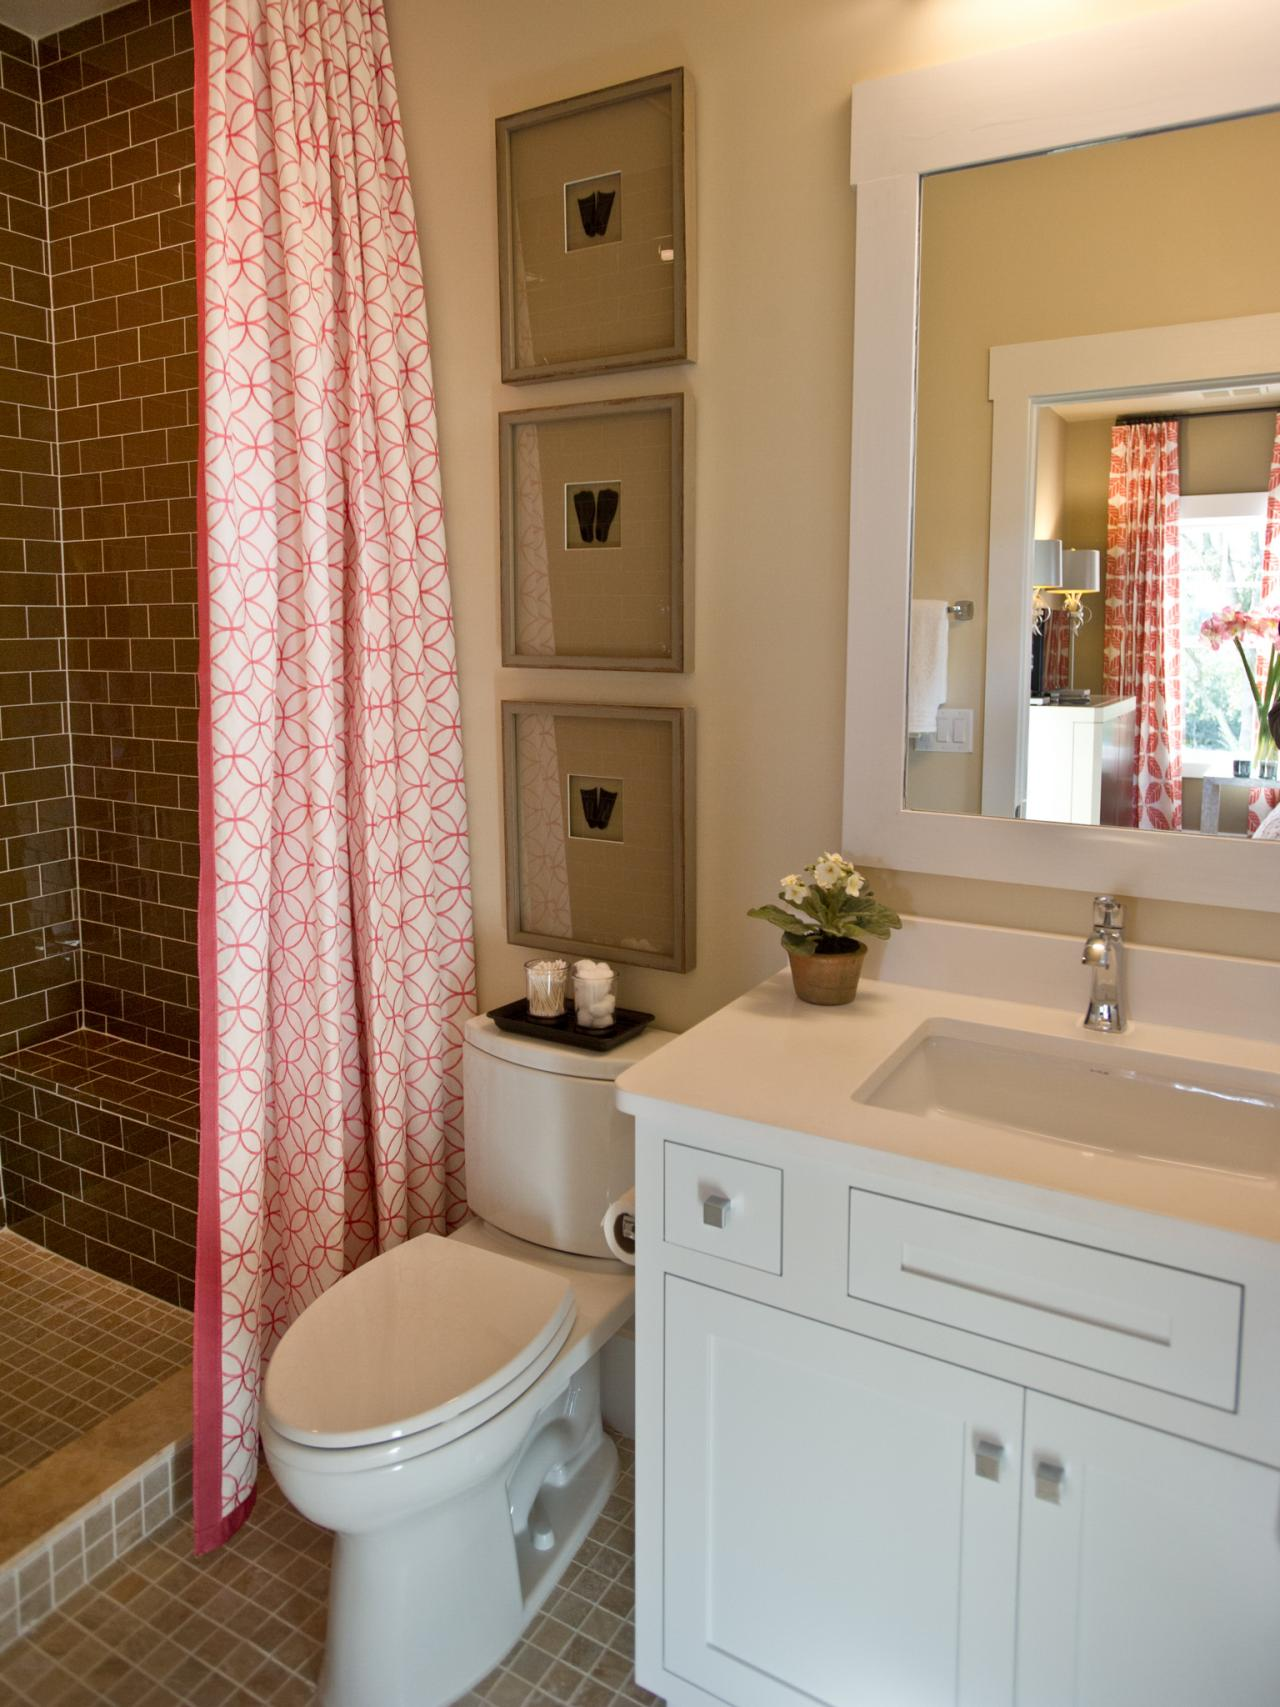 Guest bathroom from hgtv smart home 2013 hgtv smart home for Bathroom designs hgtv